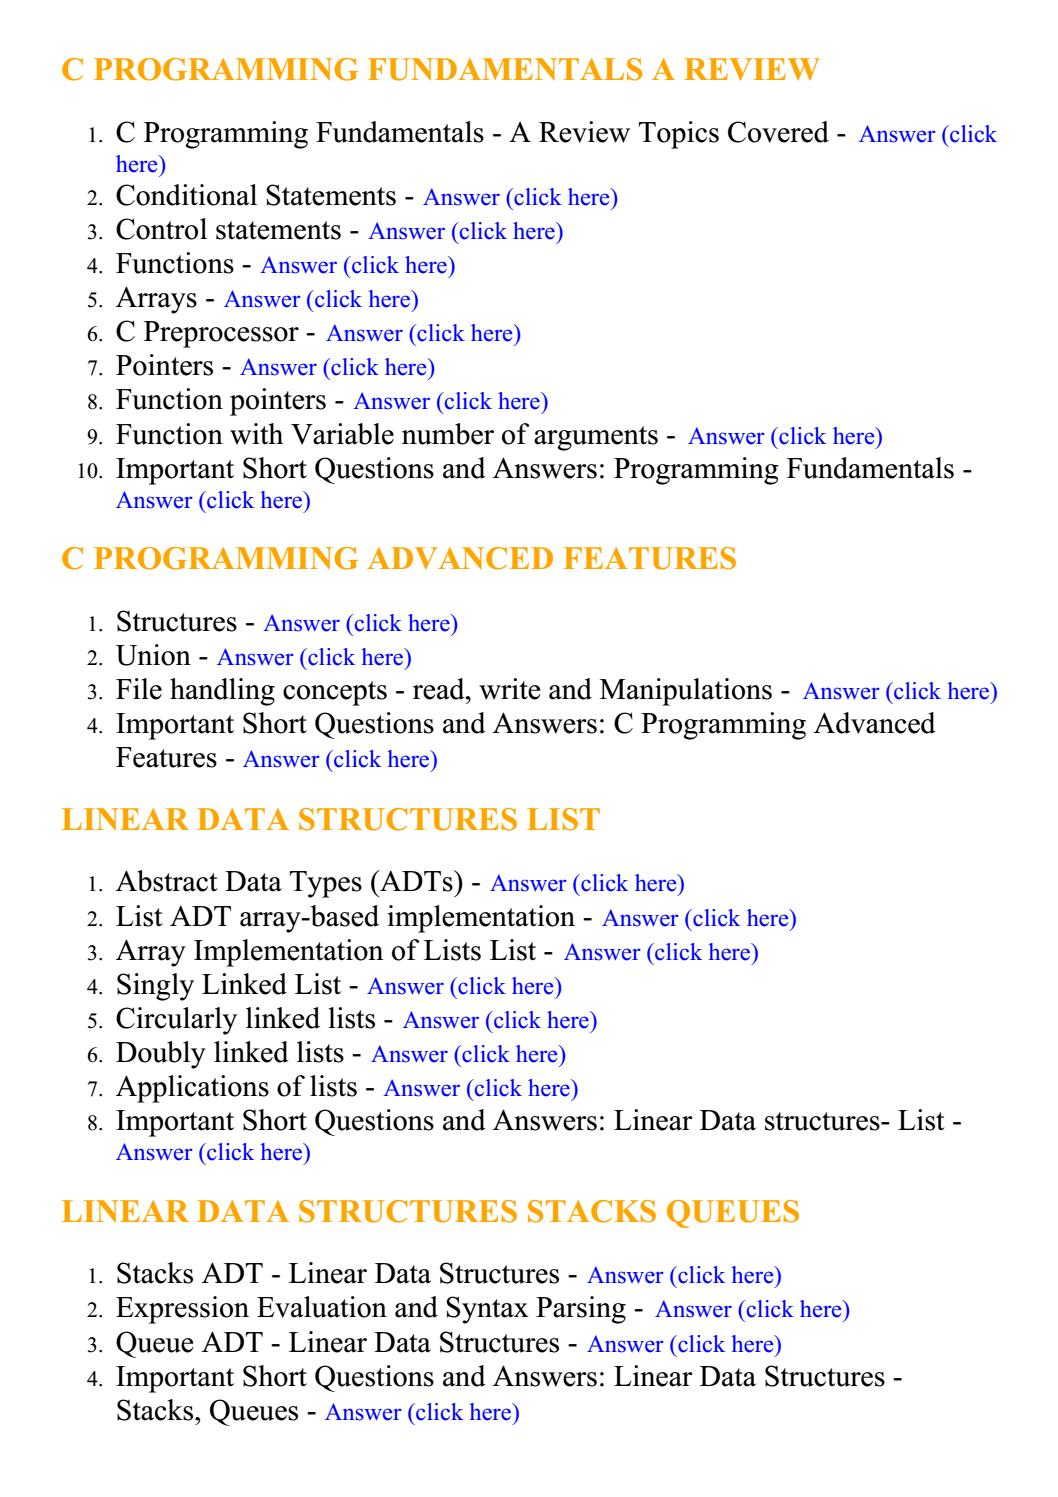 Information Technology Engineering - Lecture Notes, Study